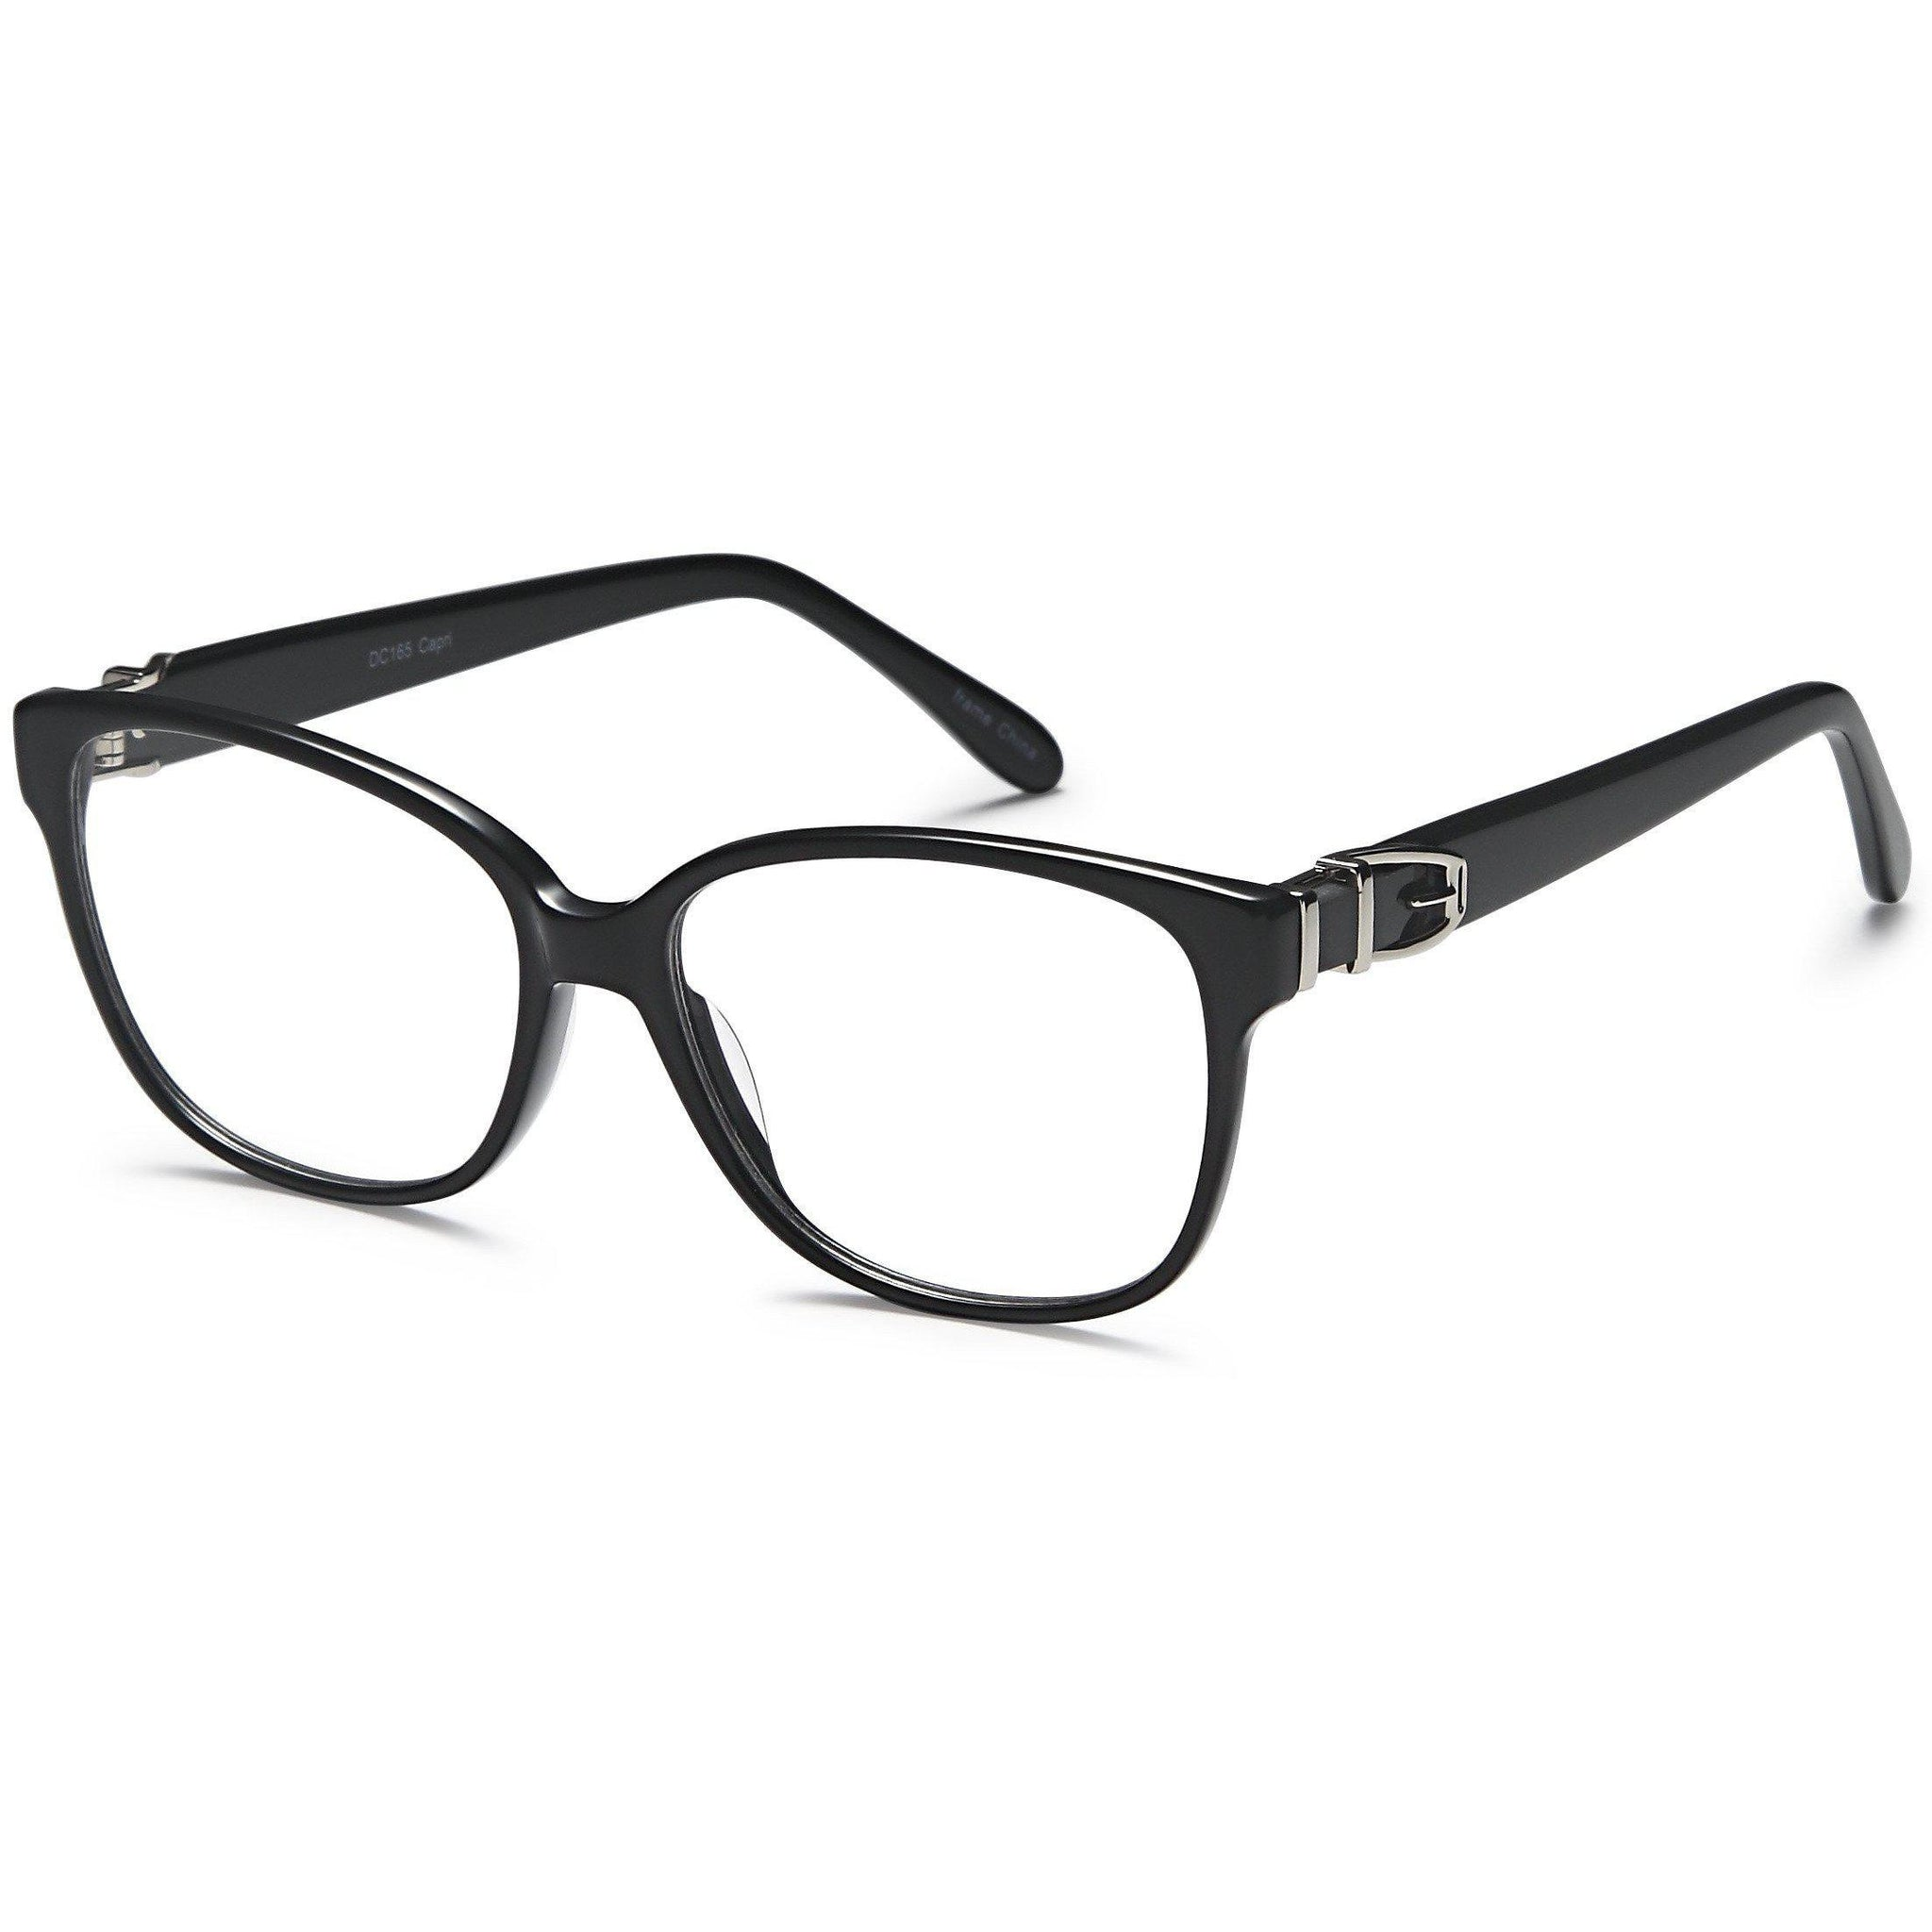 Di Caprio Prescription Glasses DC 165 Eyeglasses Frame - timetoshade